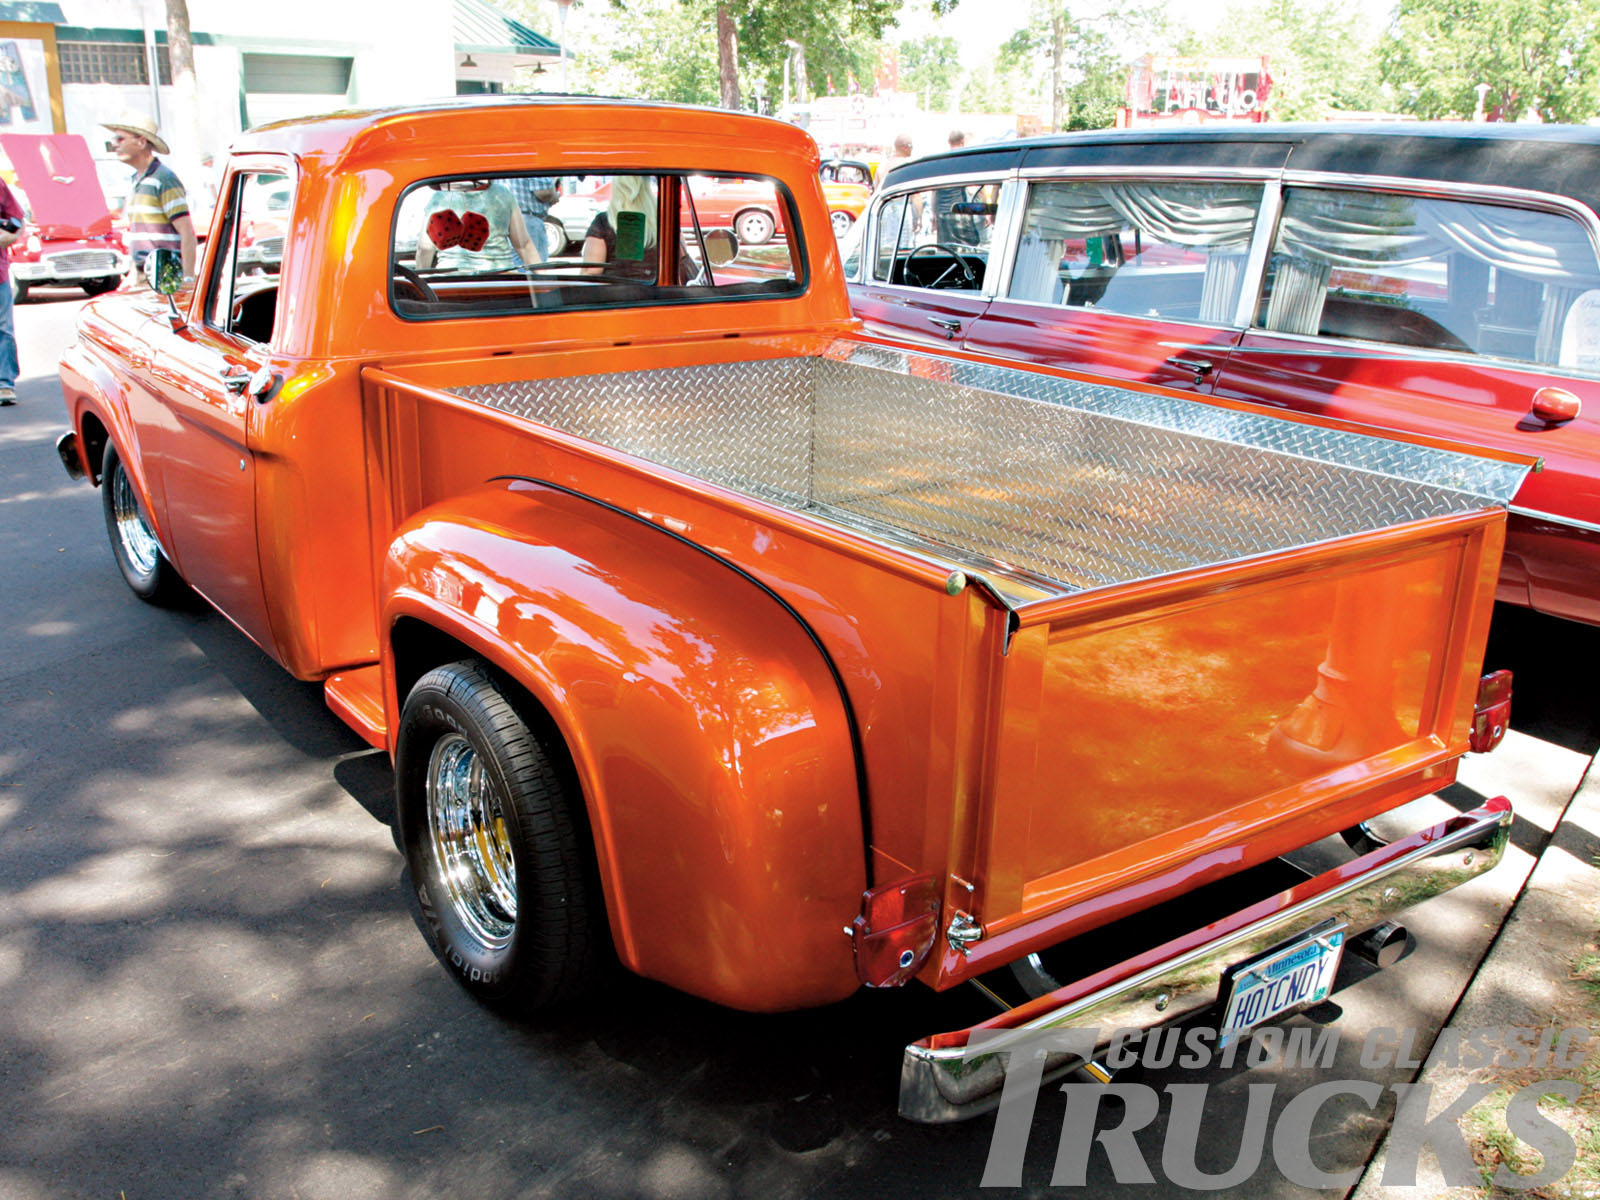 Ford f-100 1964 photo - 1